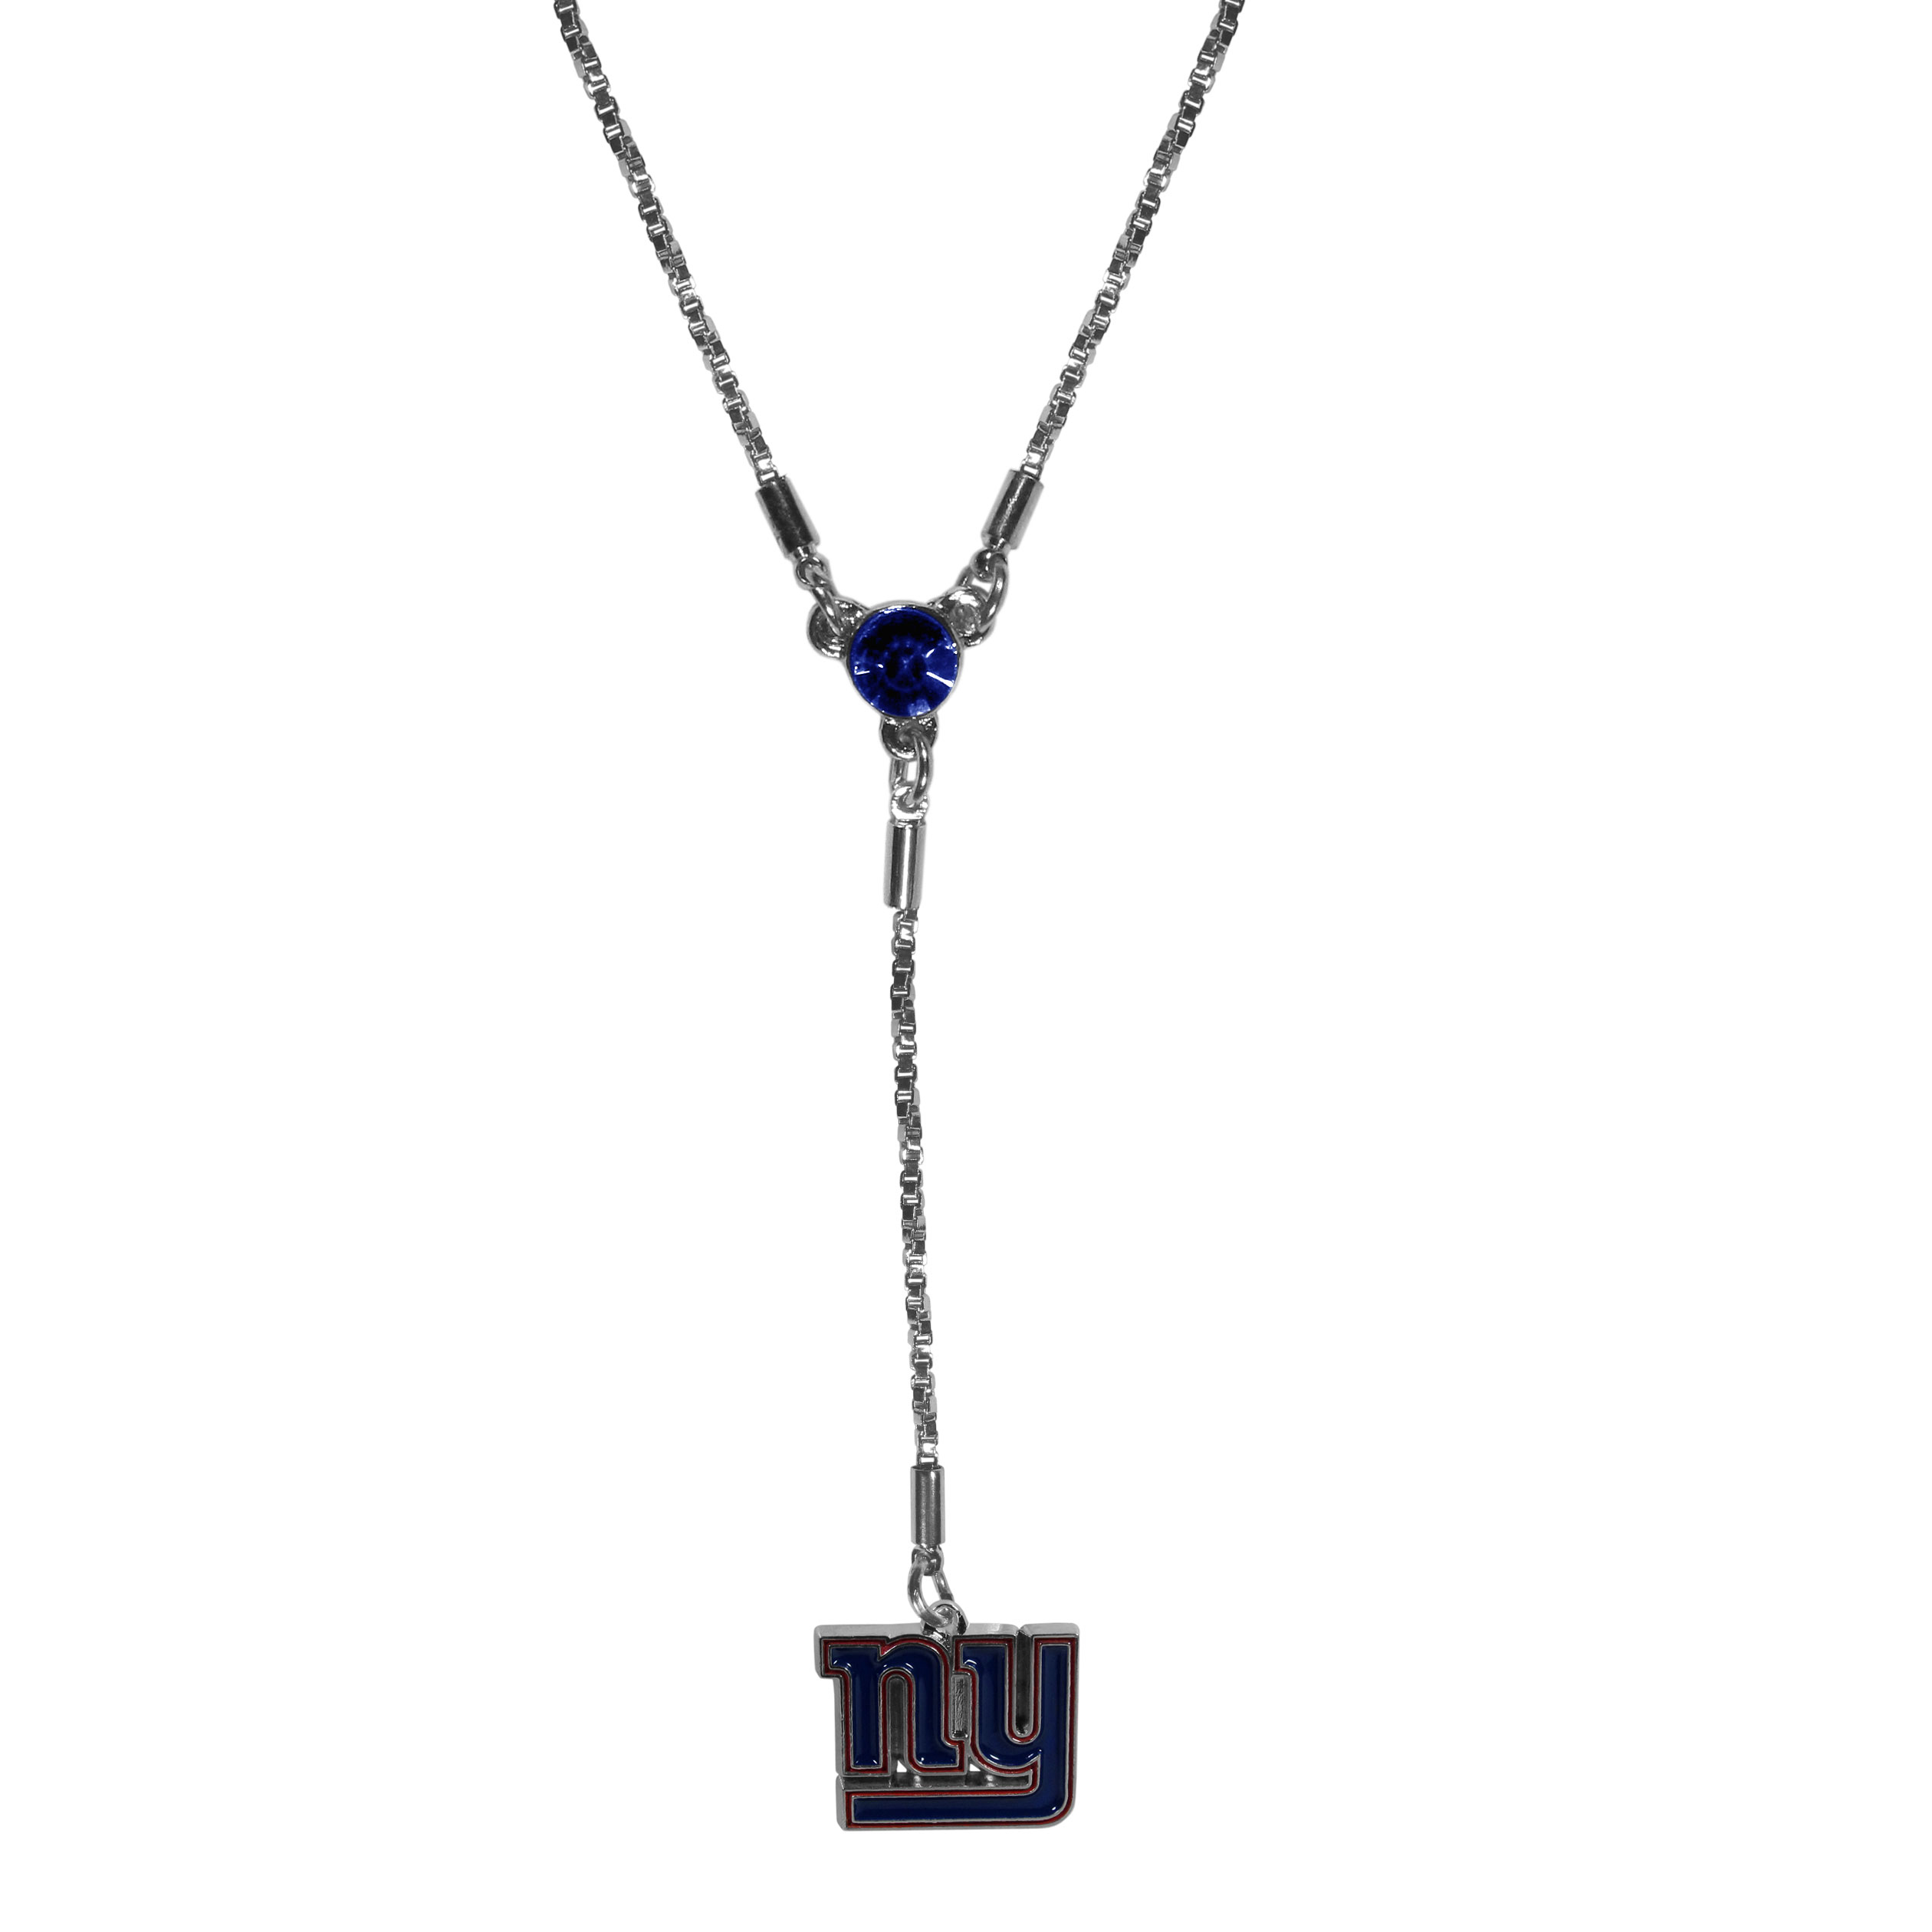 New York Giants Lariat Necklace - This designer look is a stylish version of the classic lariat necklace. The chic box chain is 16 inches long with a 2 inch extender, the Y drop features a large team colored crystal with an expertly carved team charm. This trendy look is a perfect blend of sporty and chic making is a mush-have fashion accessory for the fashion-forward New York Giants fan.